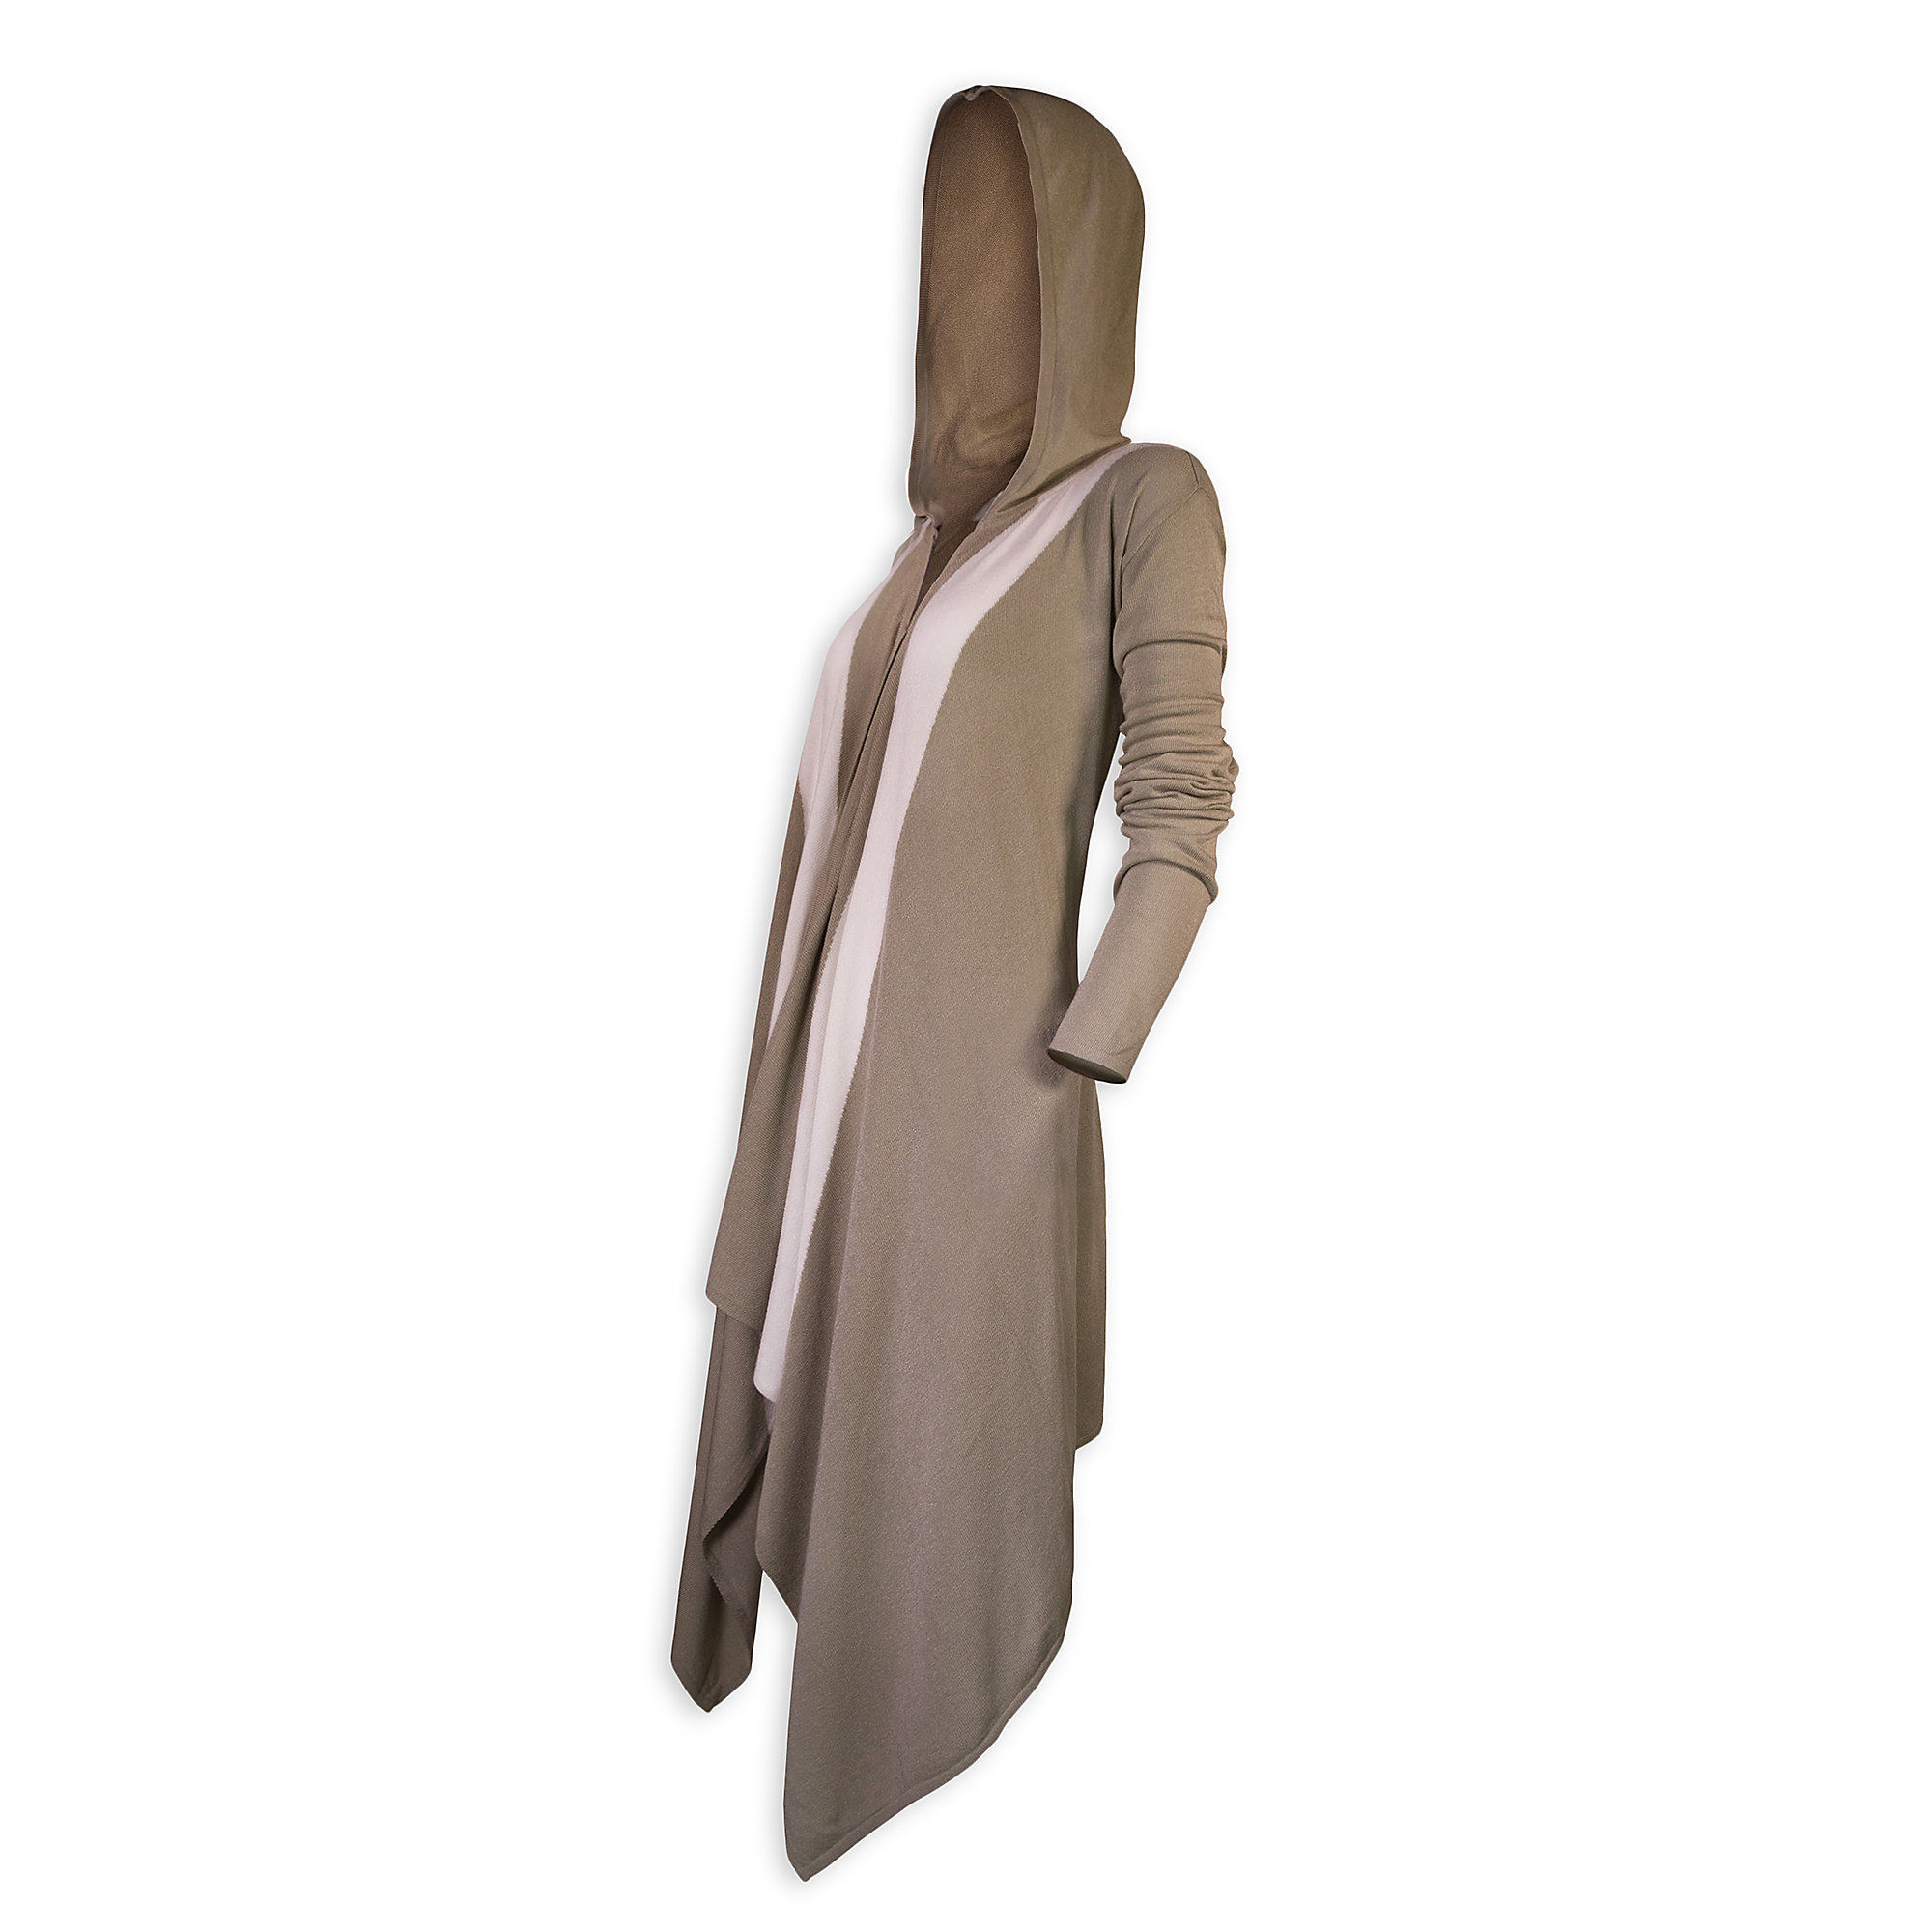 Women's Musterbrand x Star Wars Jedi Robe Sweater at Shop Disney